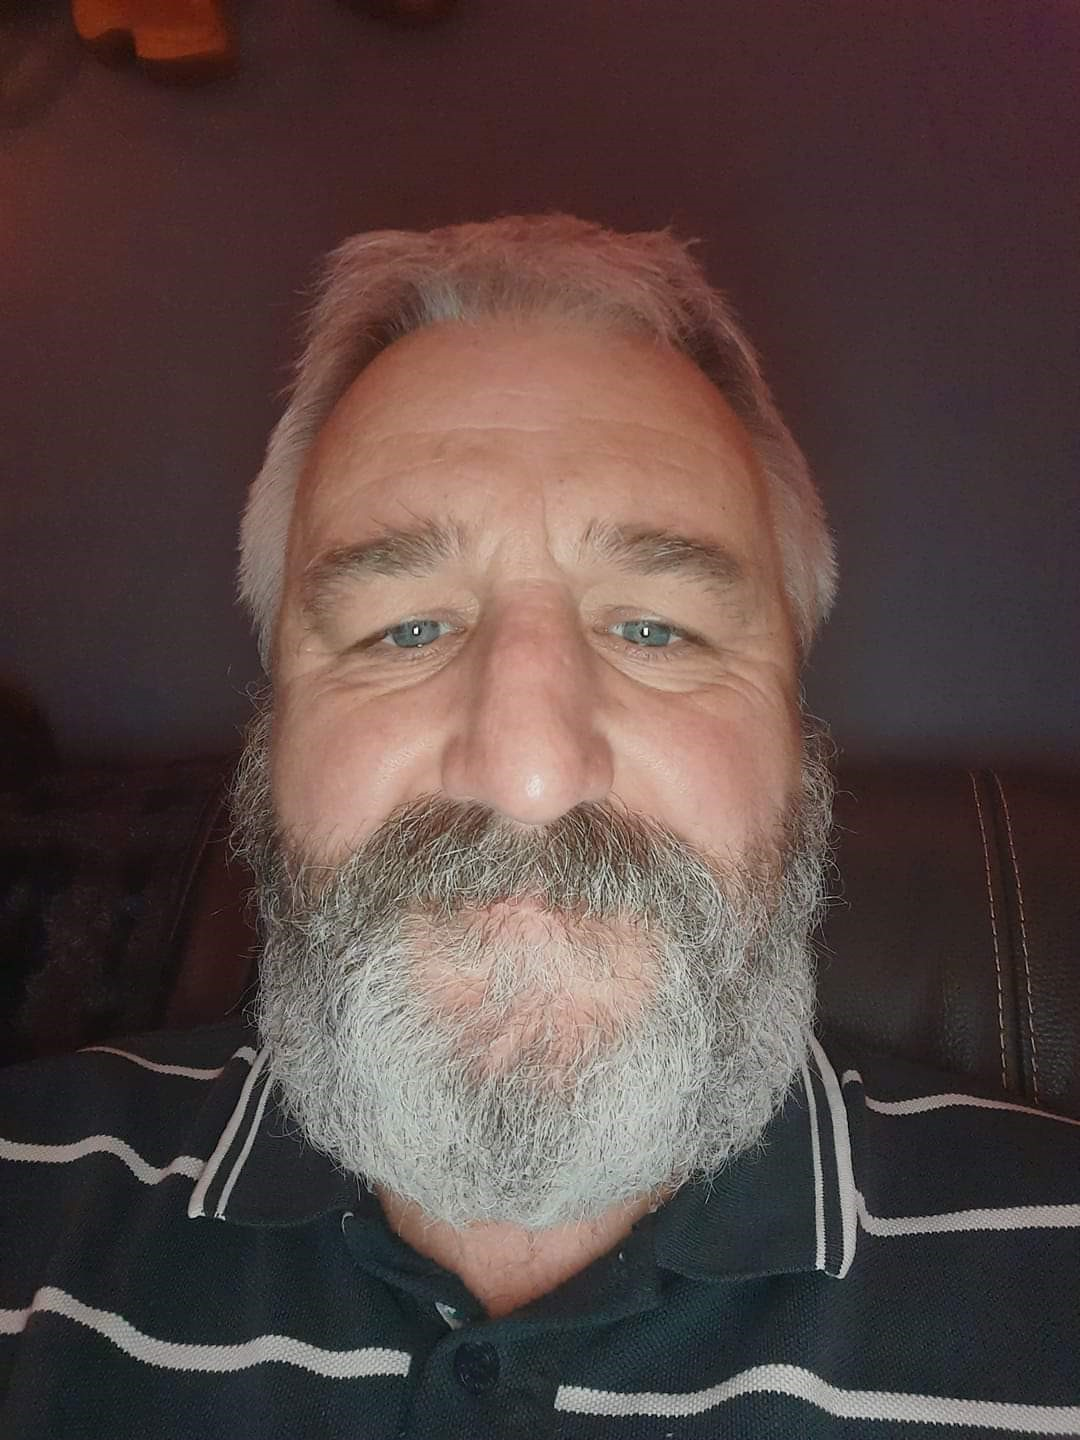 One of our supporters, David Howard, showing off his beard as part of our Decembeard campaign